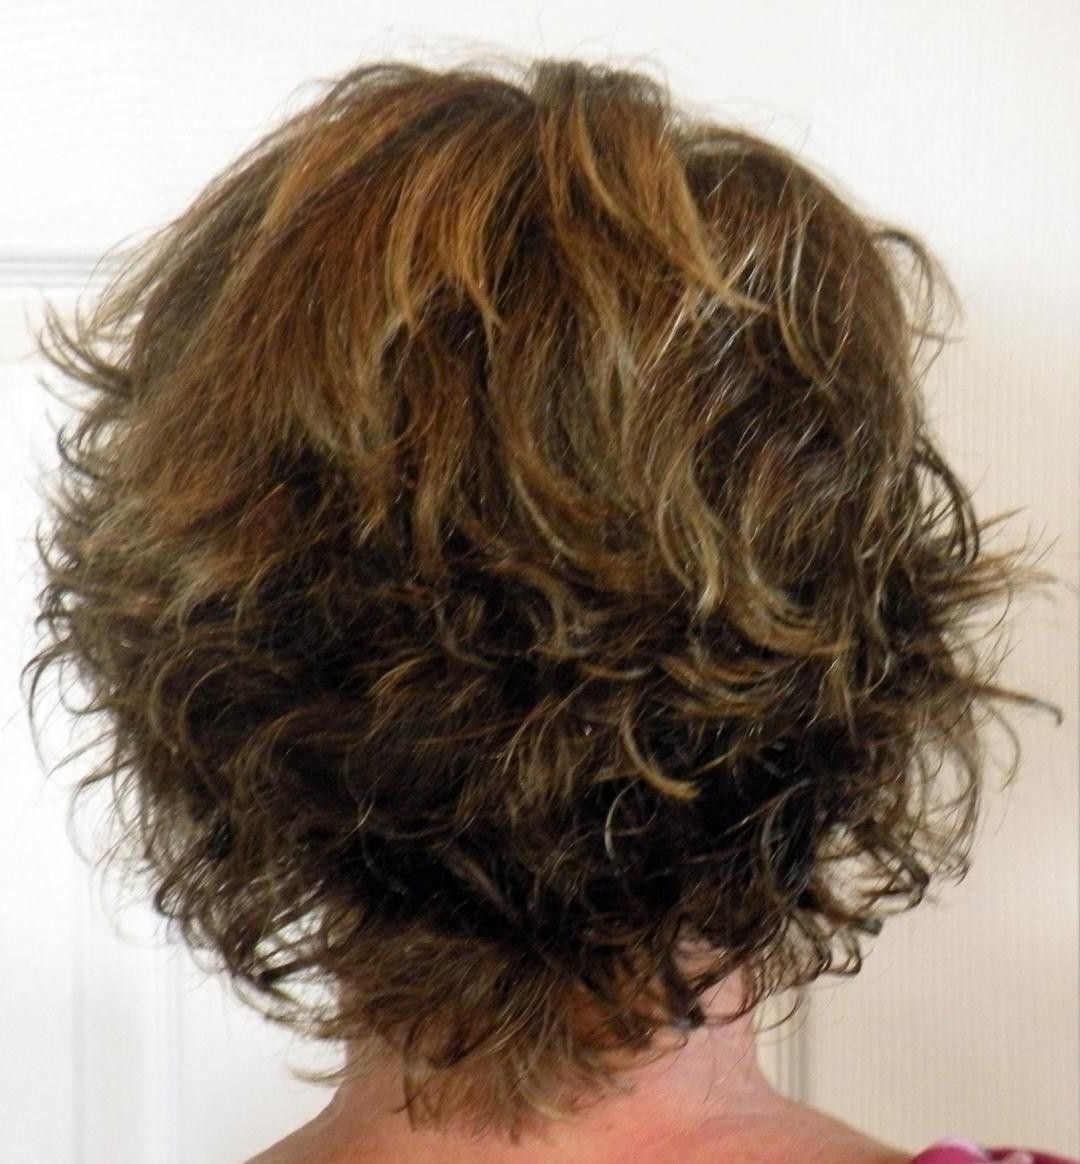 Most Recently Released Short Curly Shaggy Hairstyles Throughout Short Layered Haircuts Back View (View 7 of 15)